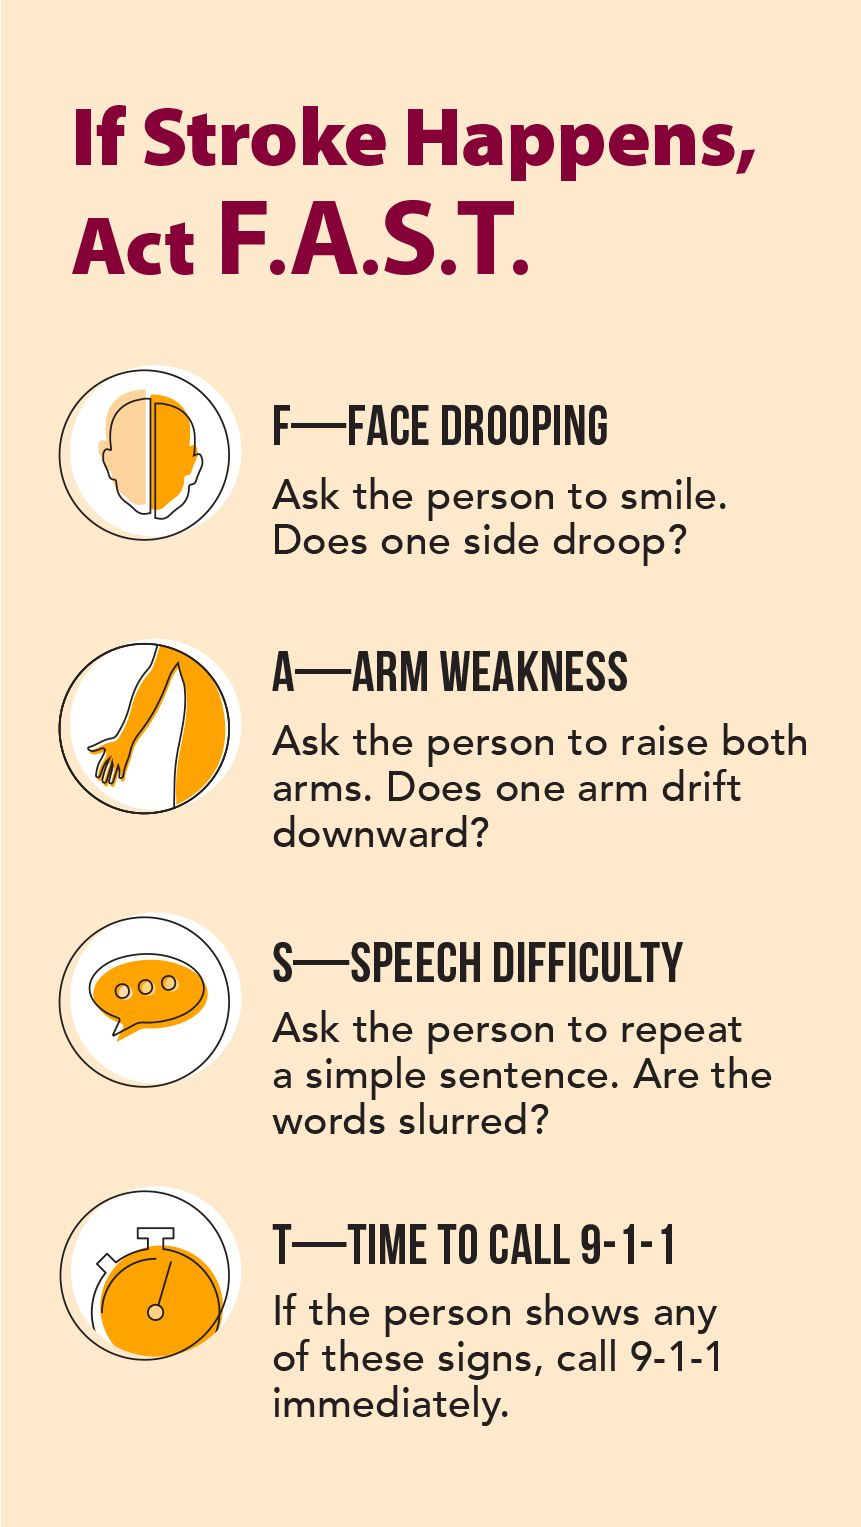 Learn the signs of a stroke and what you can do to prevent